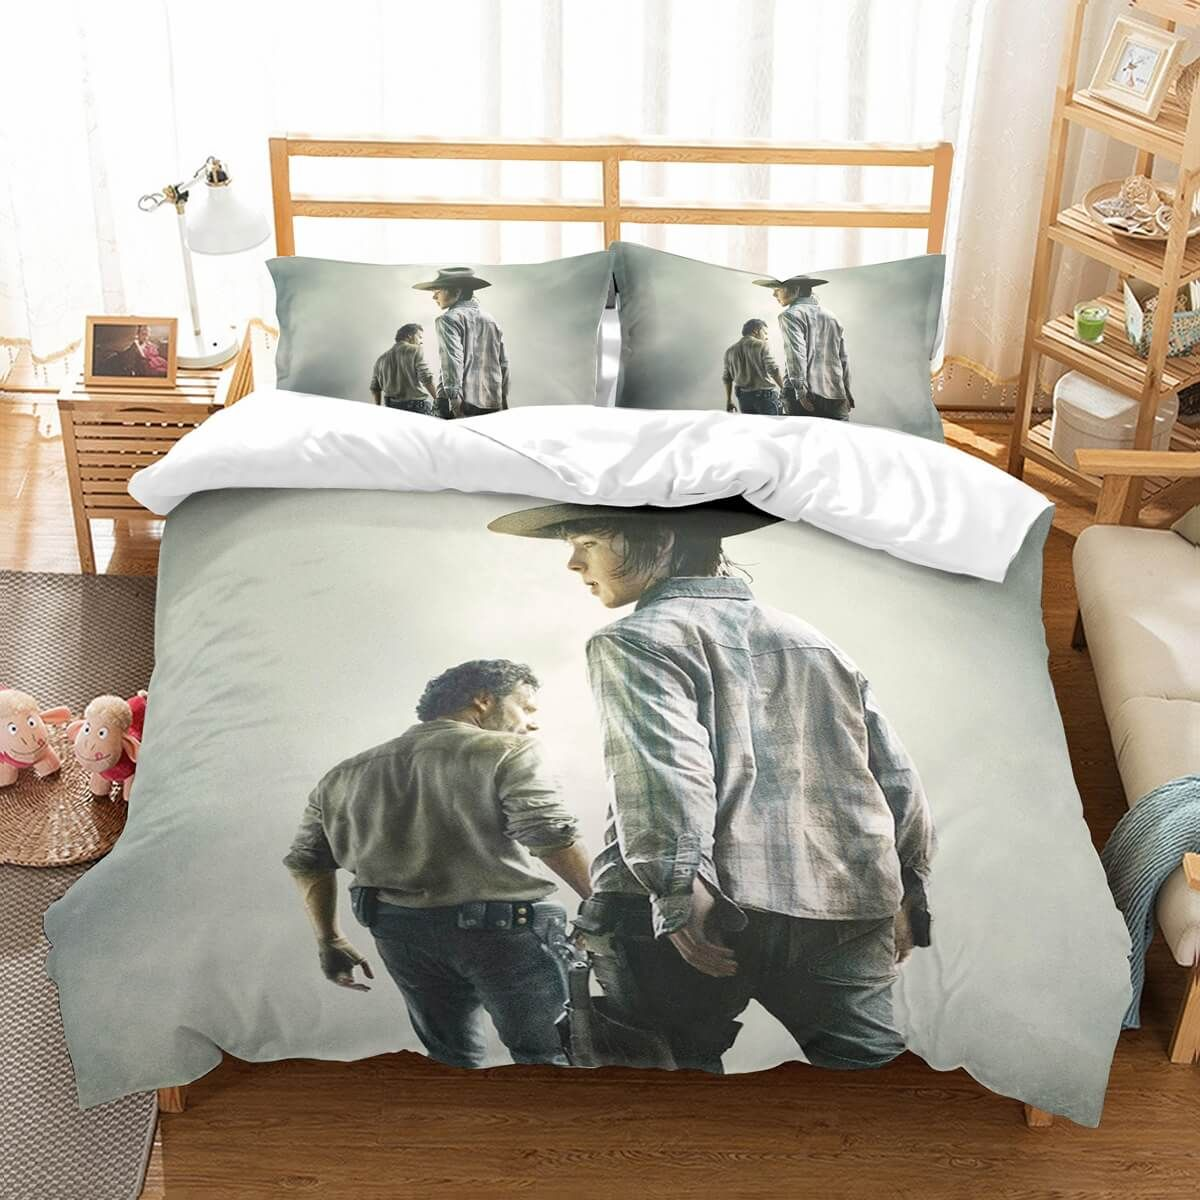 Zombie Bedsheets For Creepy Sleepy The Walking Dead Zombie